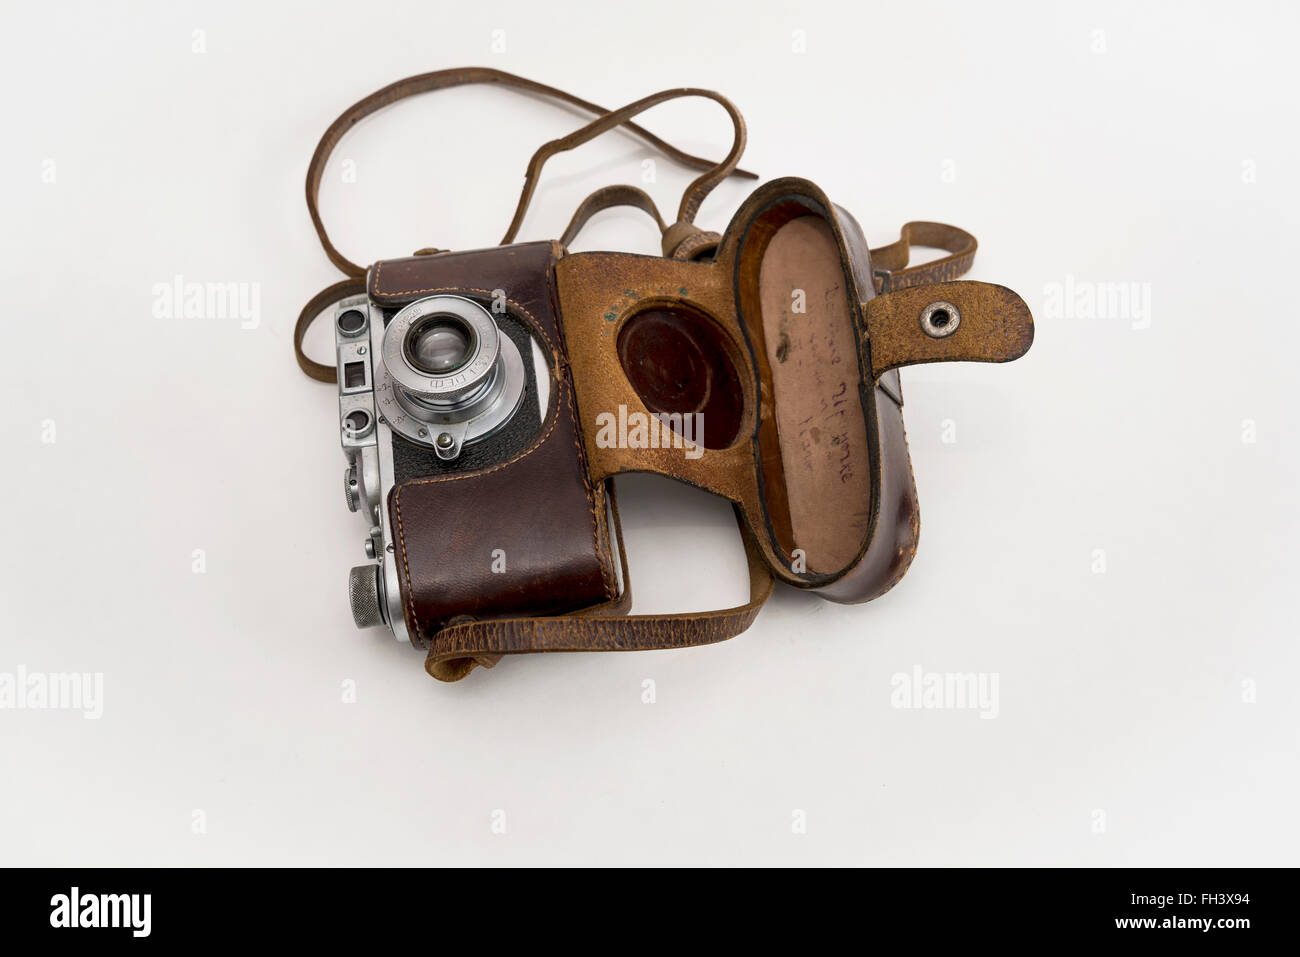 'Stalinist' FED camera, made in  child labor commune  of the NKVD / KGB / in the 30s of the 20th century - Stock Image